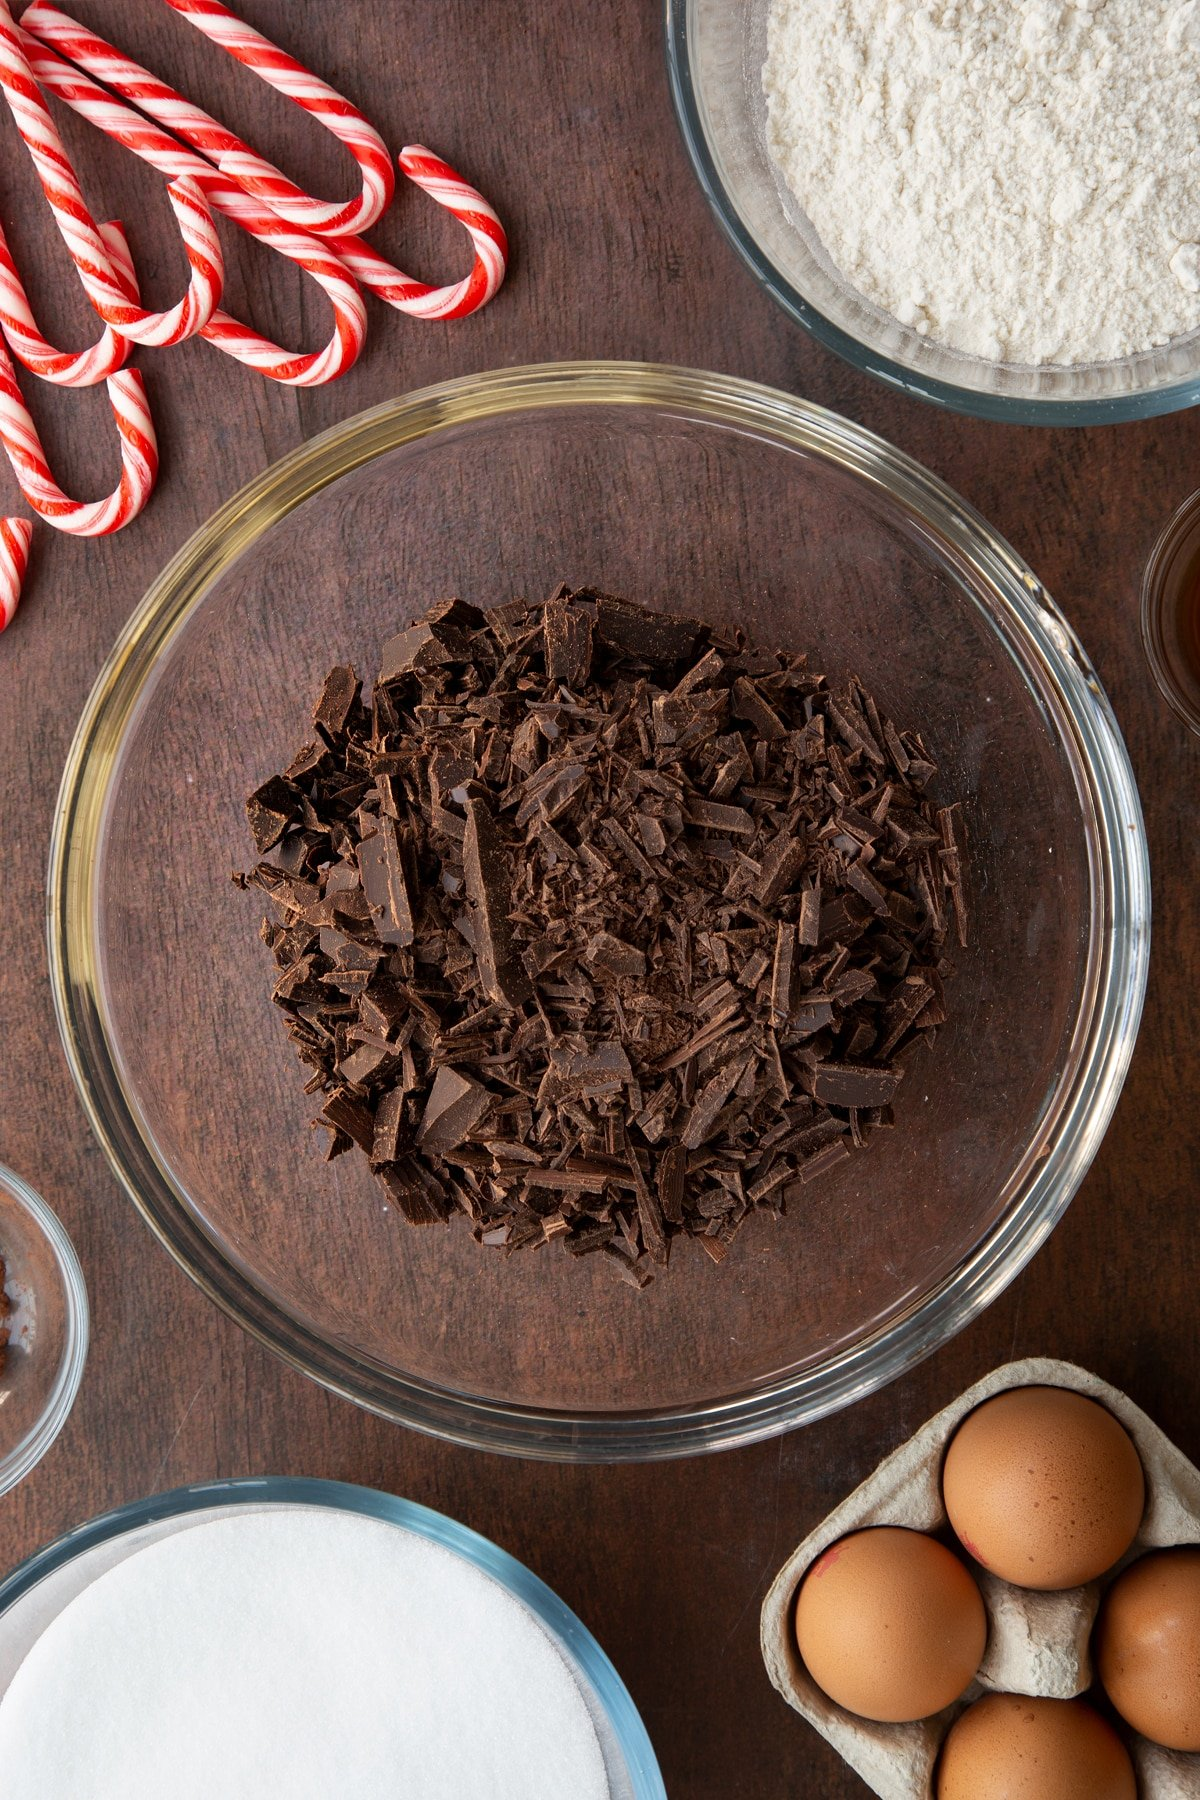 Chopped dark chocolate in a glass bowl. Ingredients to make Candy cane brownies surround the bowl.